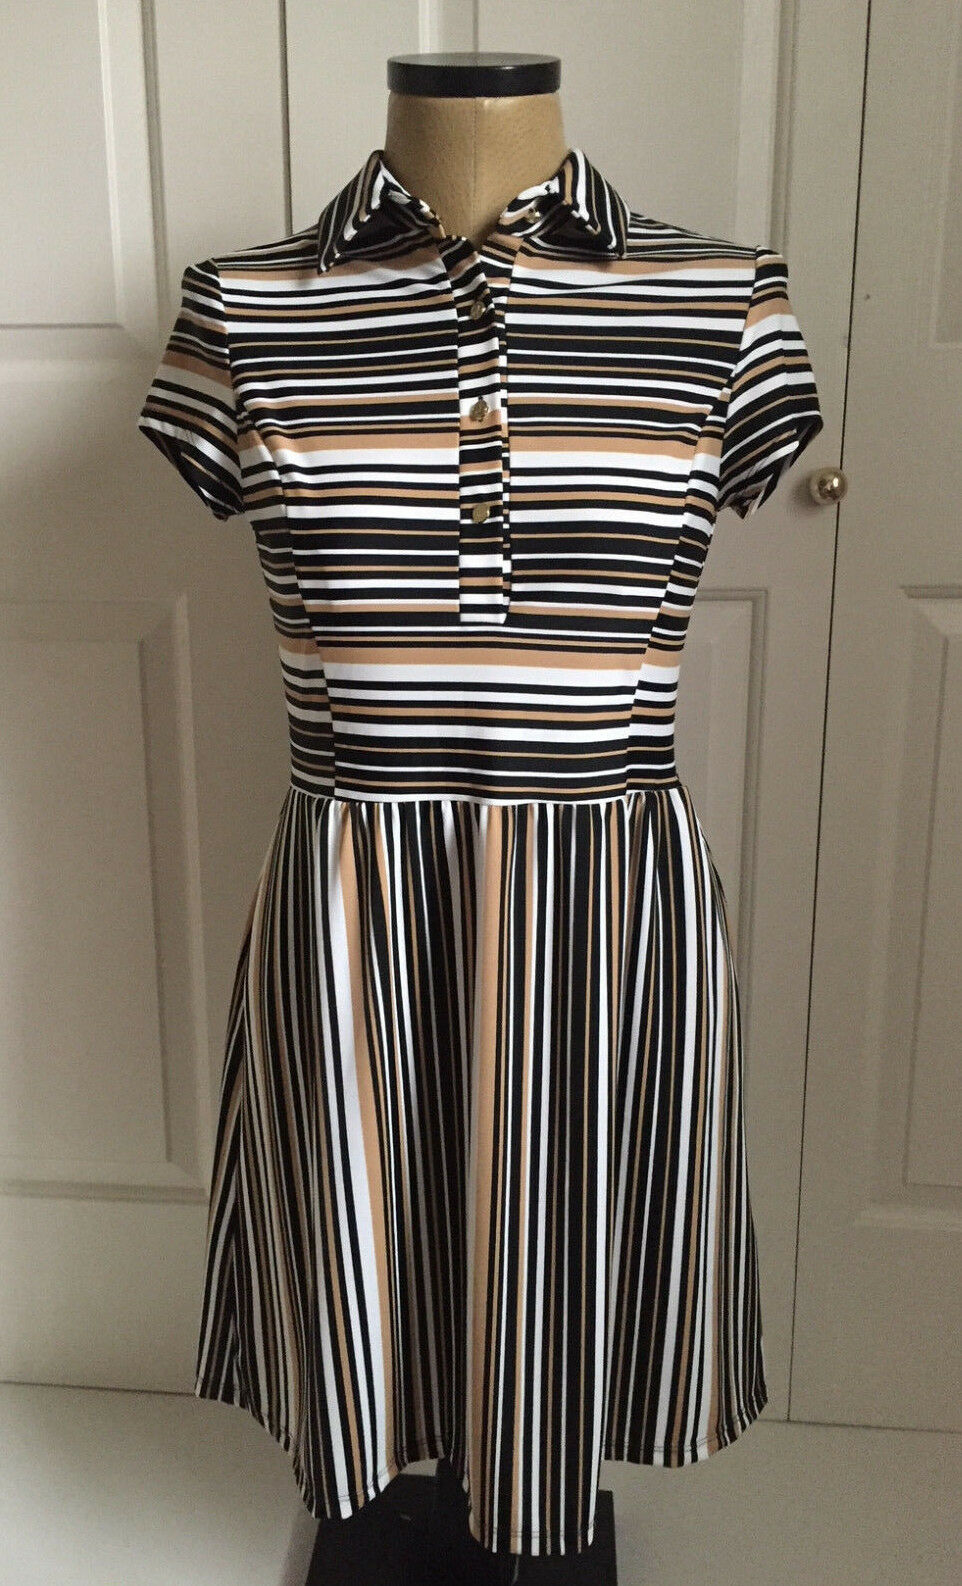 JUDE CONNALLY MILA NEUTRAL STRIPE FORMAL BUSINESS DRESS S